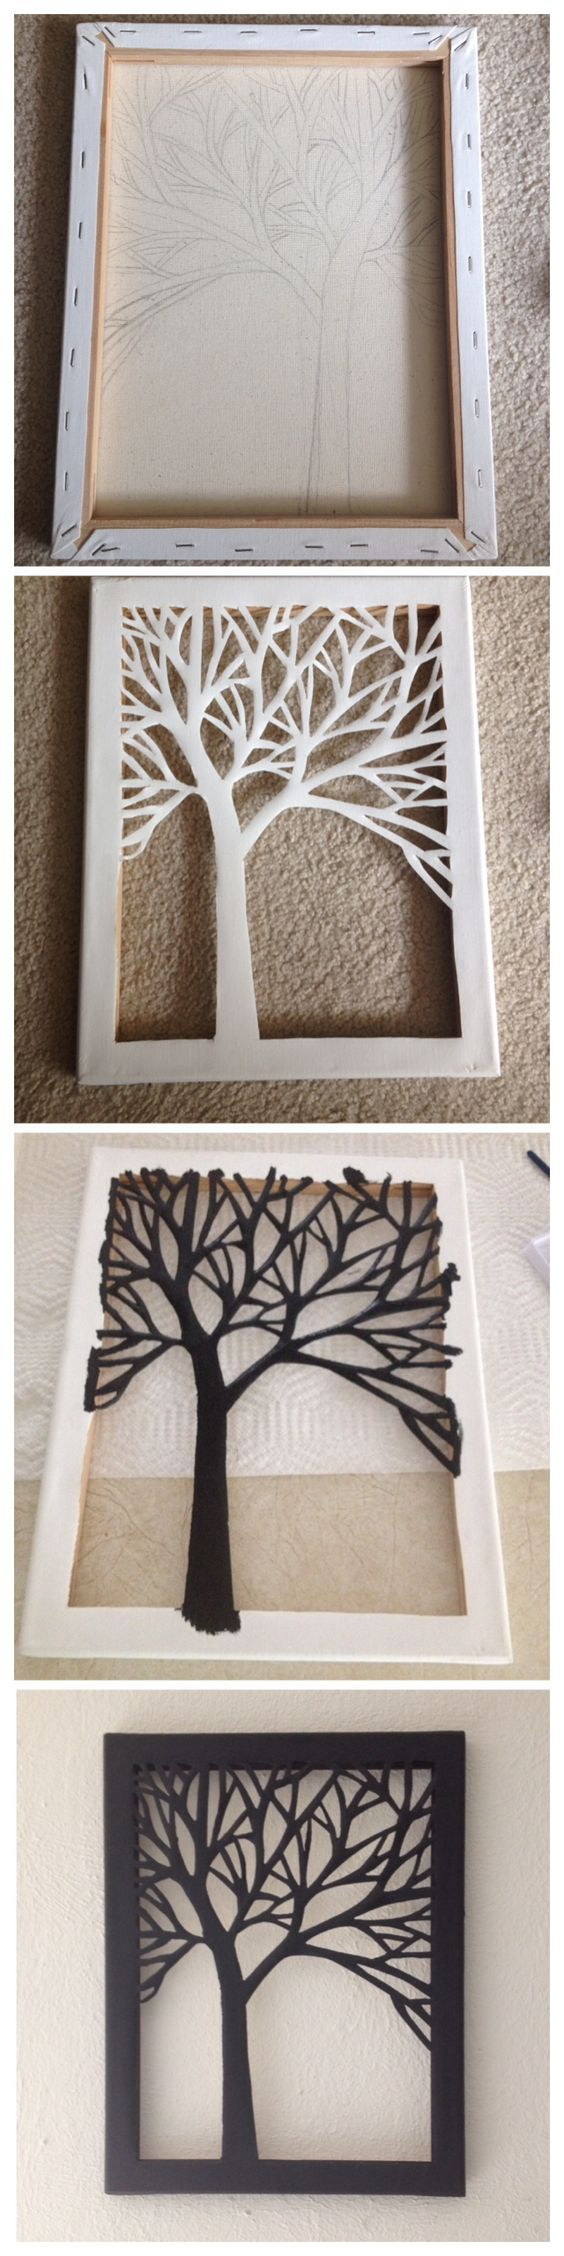 Easy Weekend Diy Projects For Home Decoration 2017